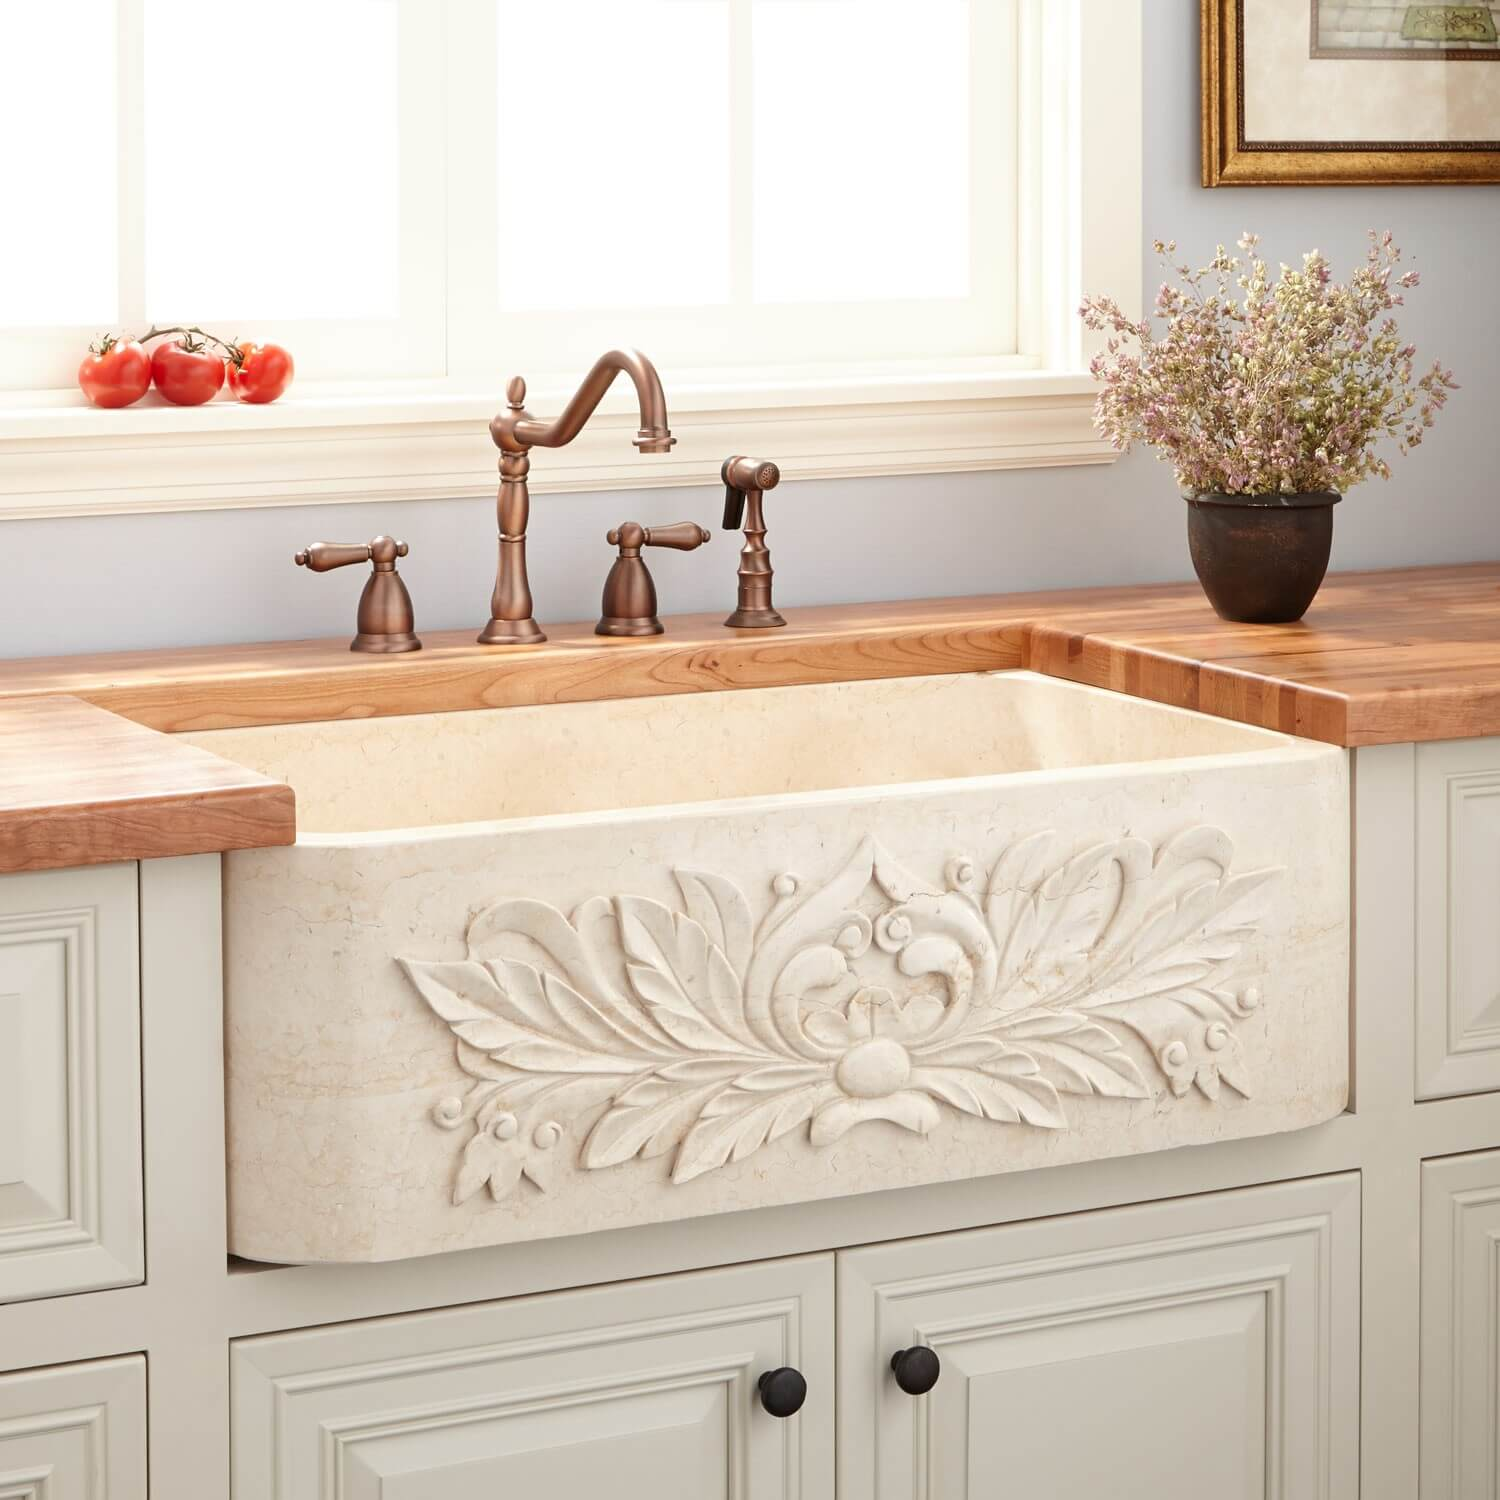 26 Farmhouse Kitchen Sink Ideas and Designs for 2020 on Farmhouse Kitchen Sink Ideas  id=46319